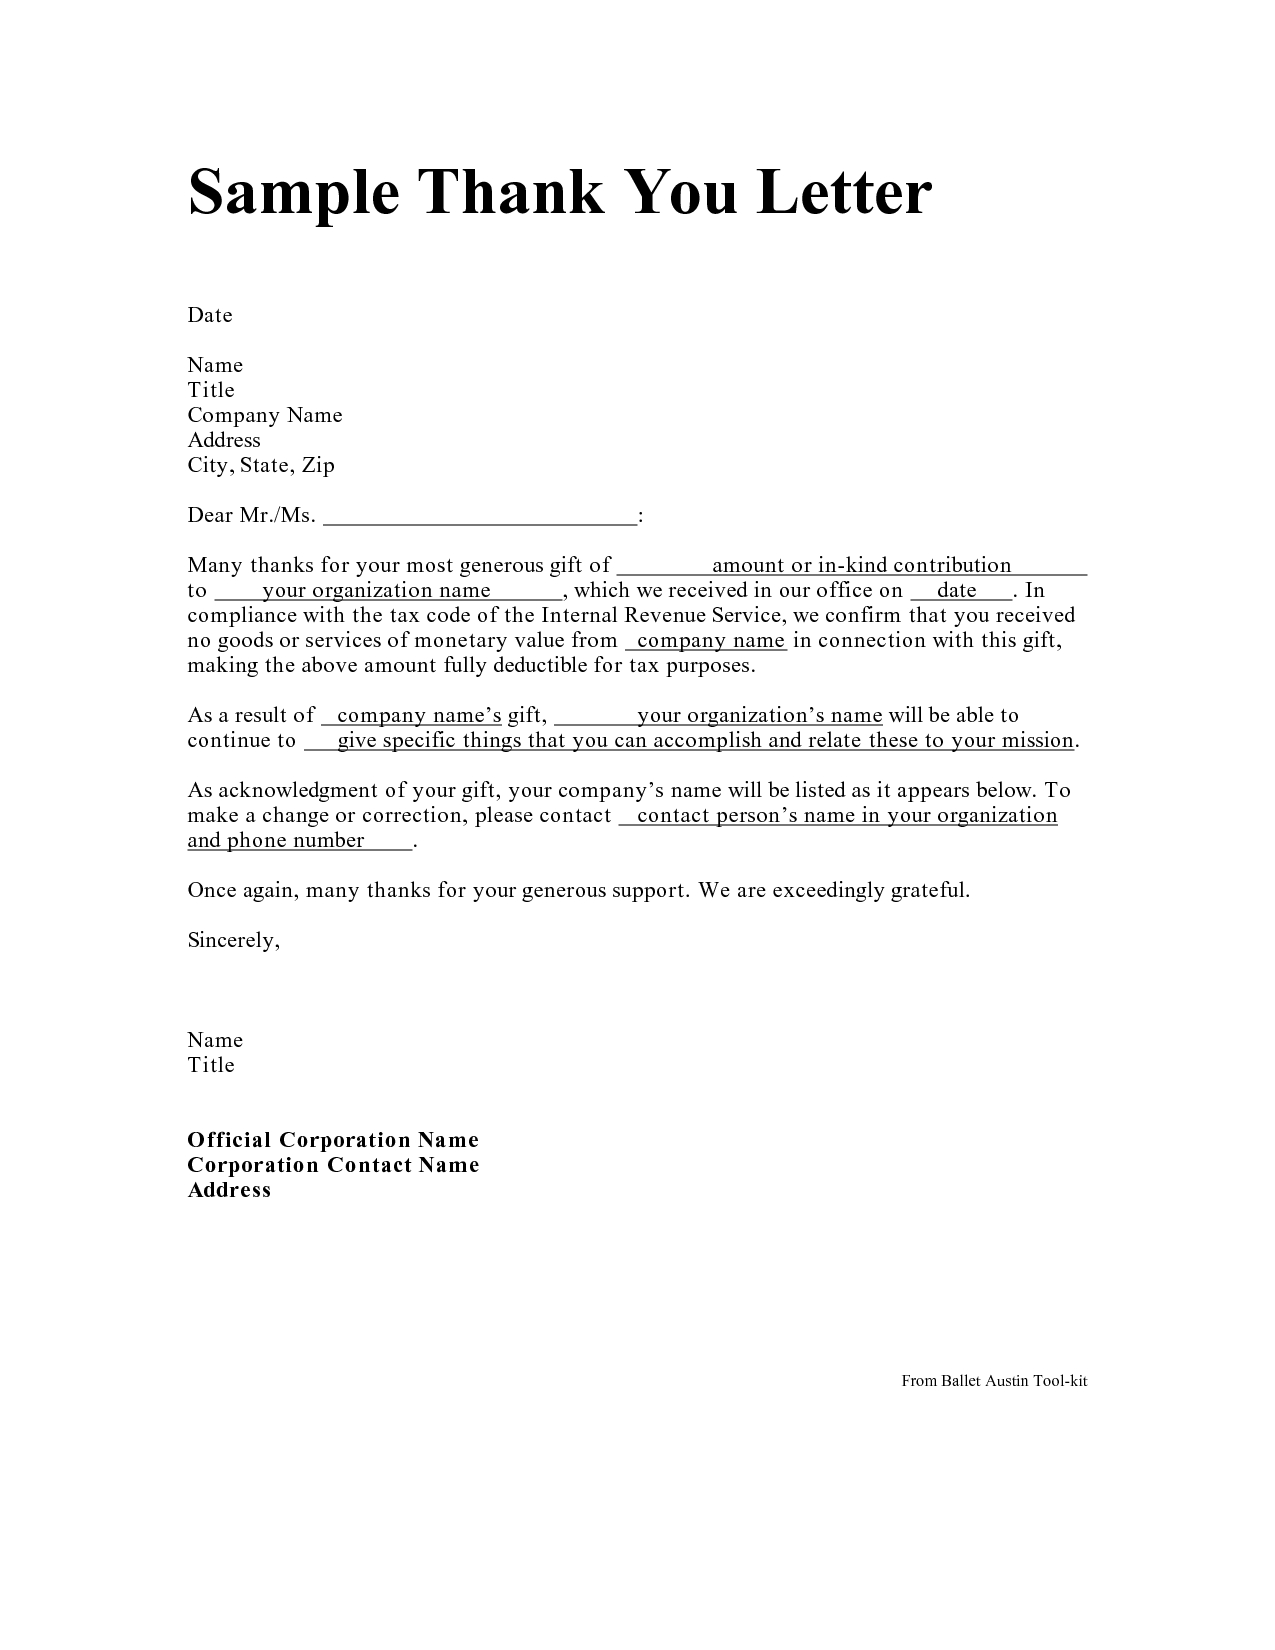 Internal Cover Letter Template - Personal Thank You Letter Personal Thank You Letter Samples